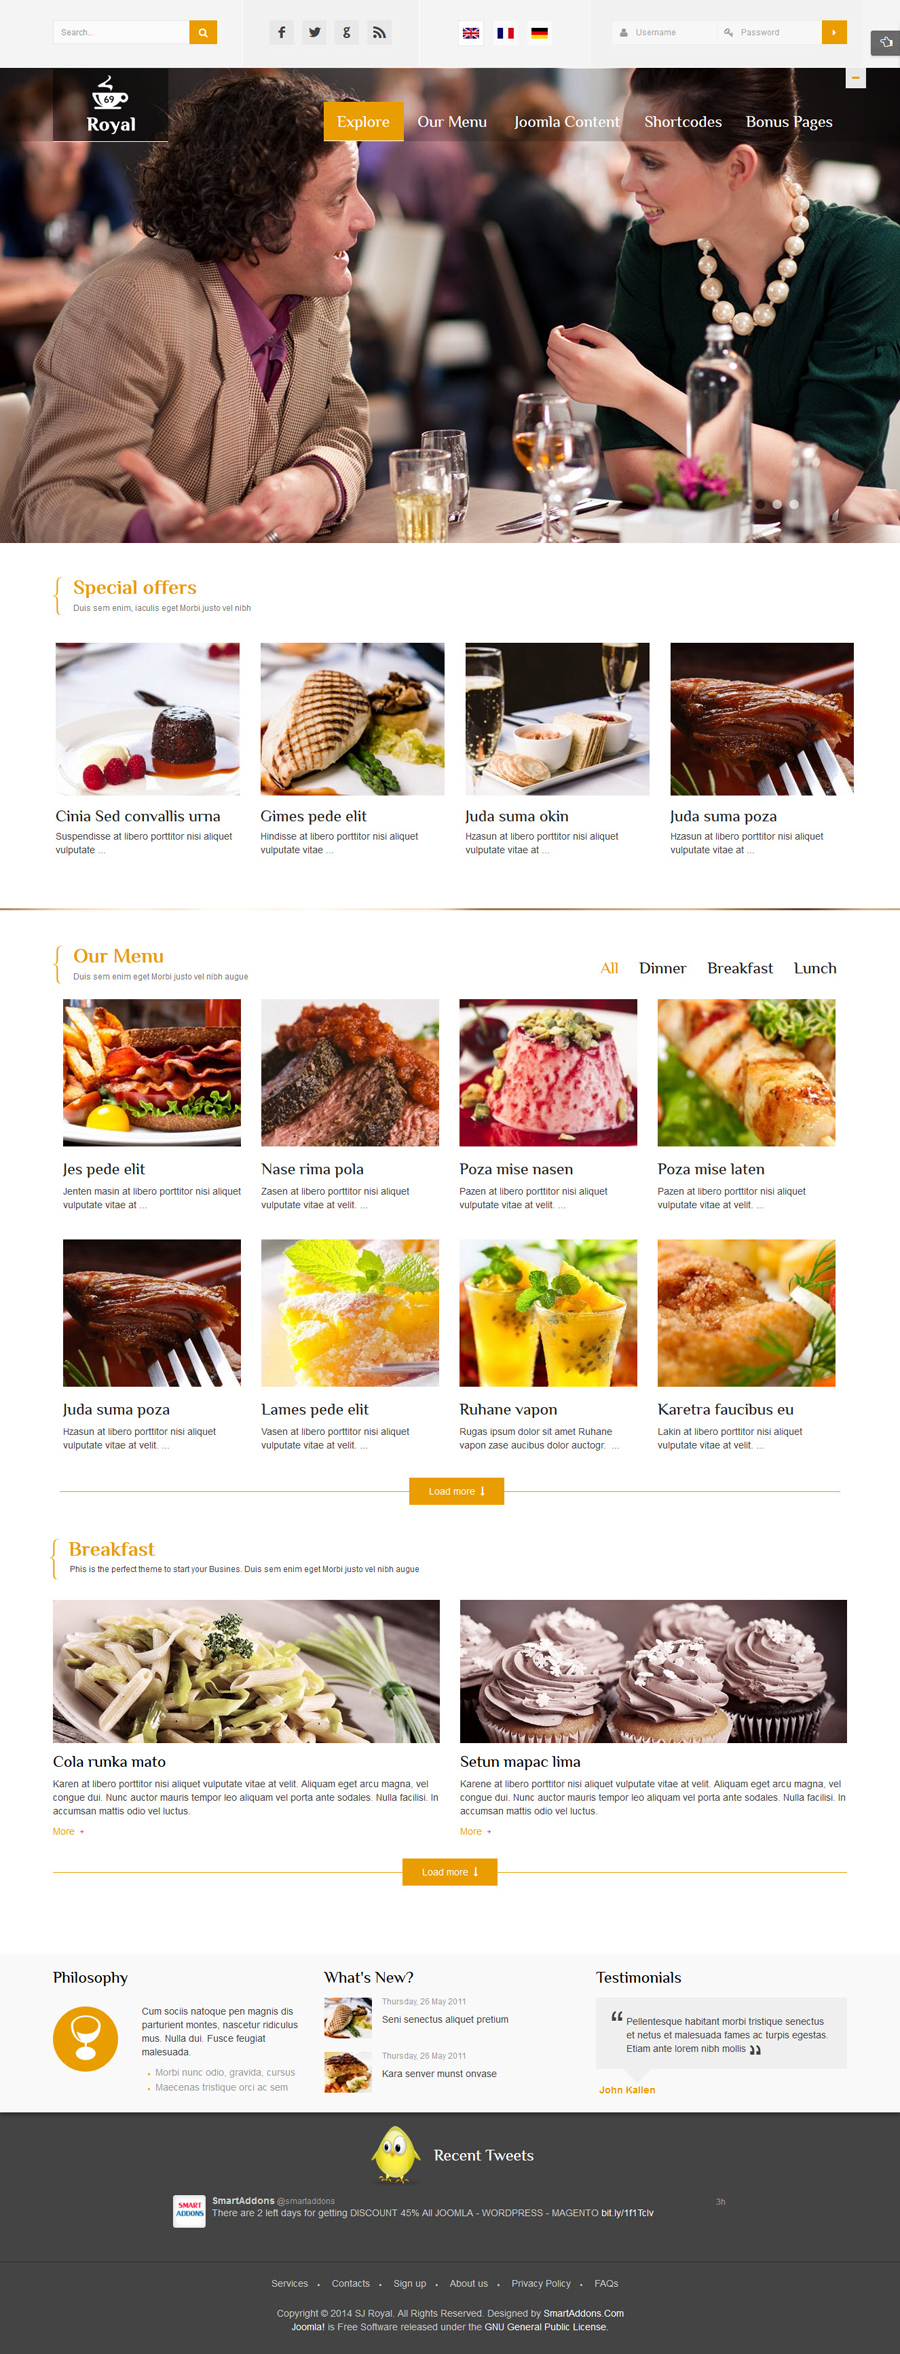 SJ Royal - Responsive Joomla Restaurant, Hotel Template - 04-golden.jpg